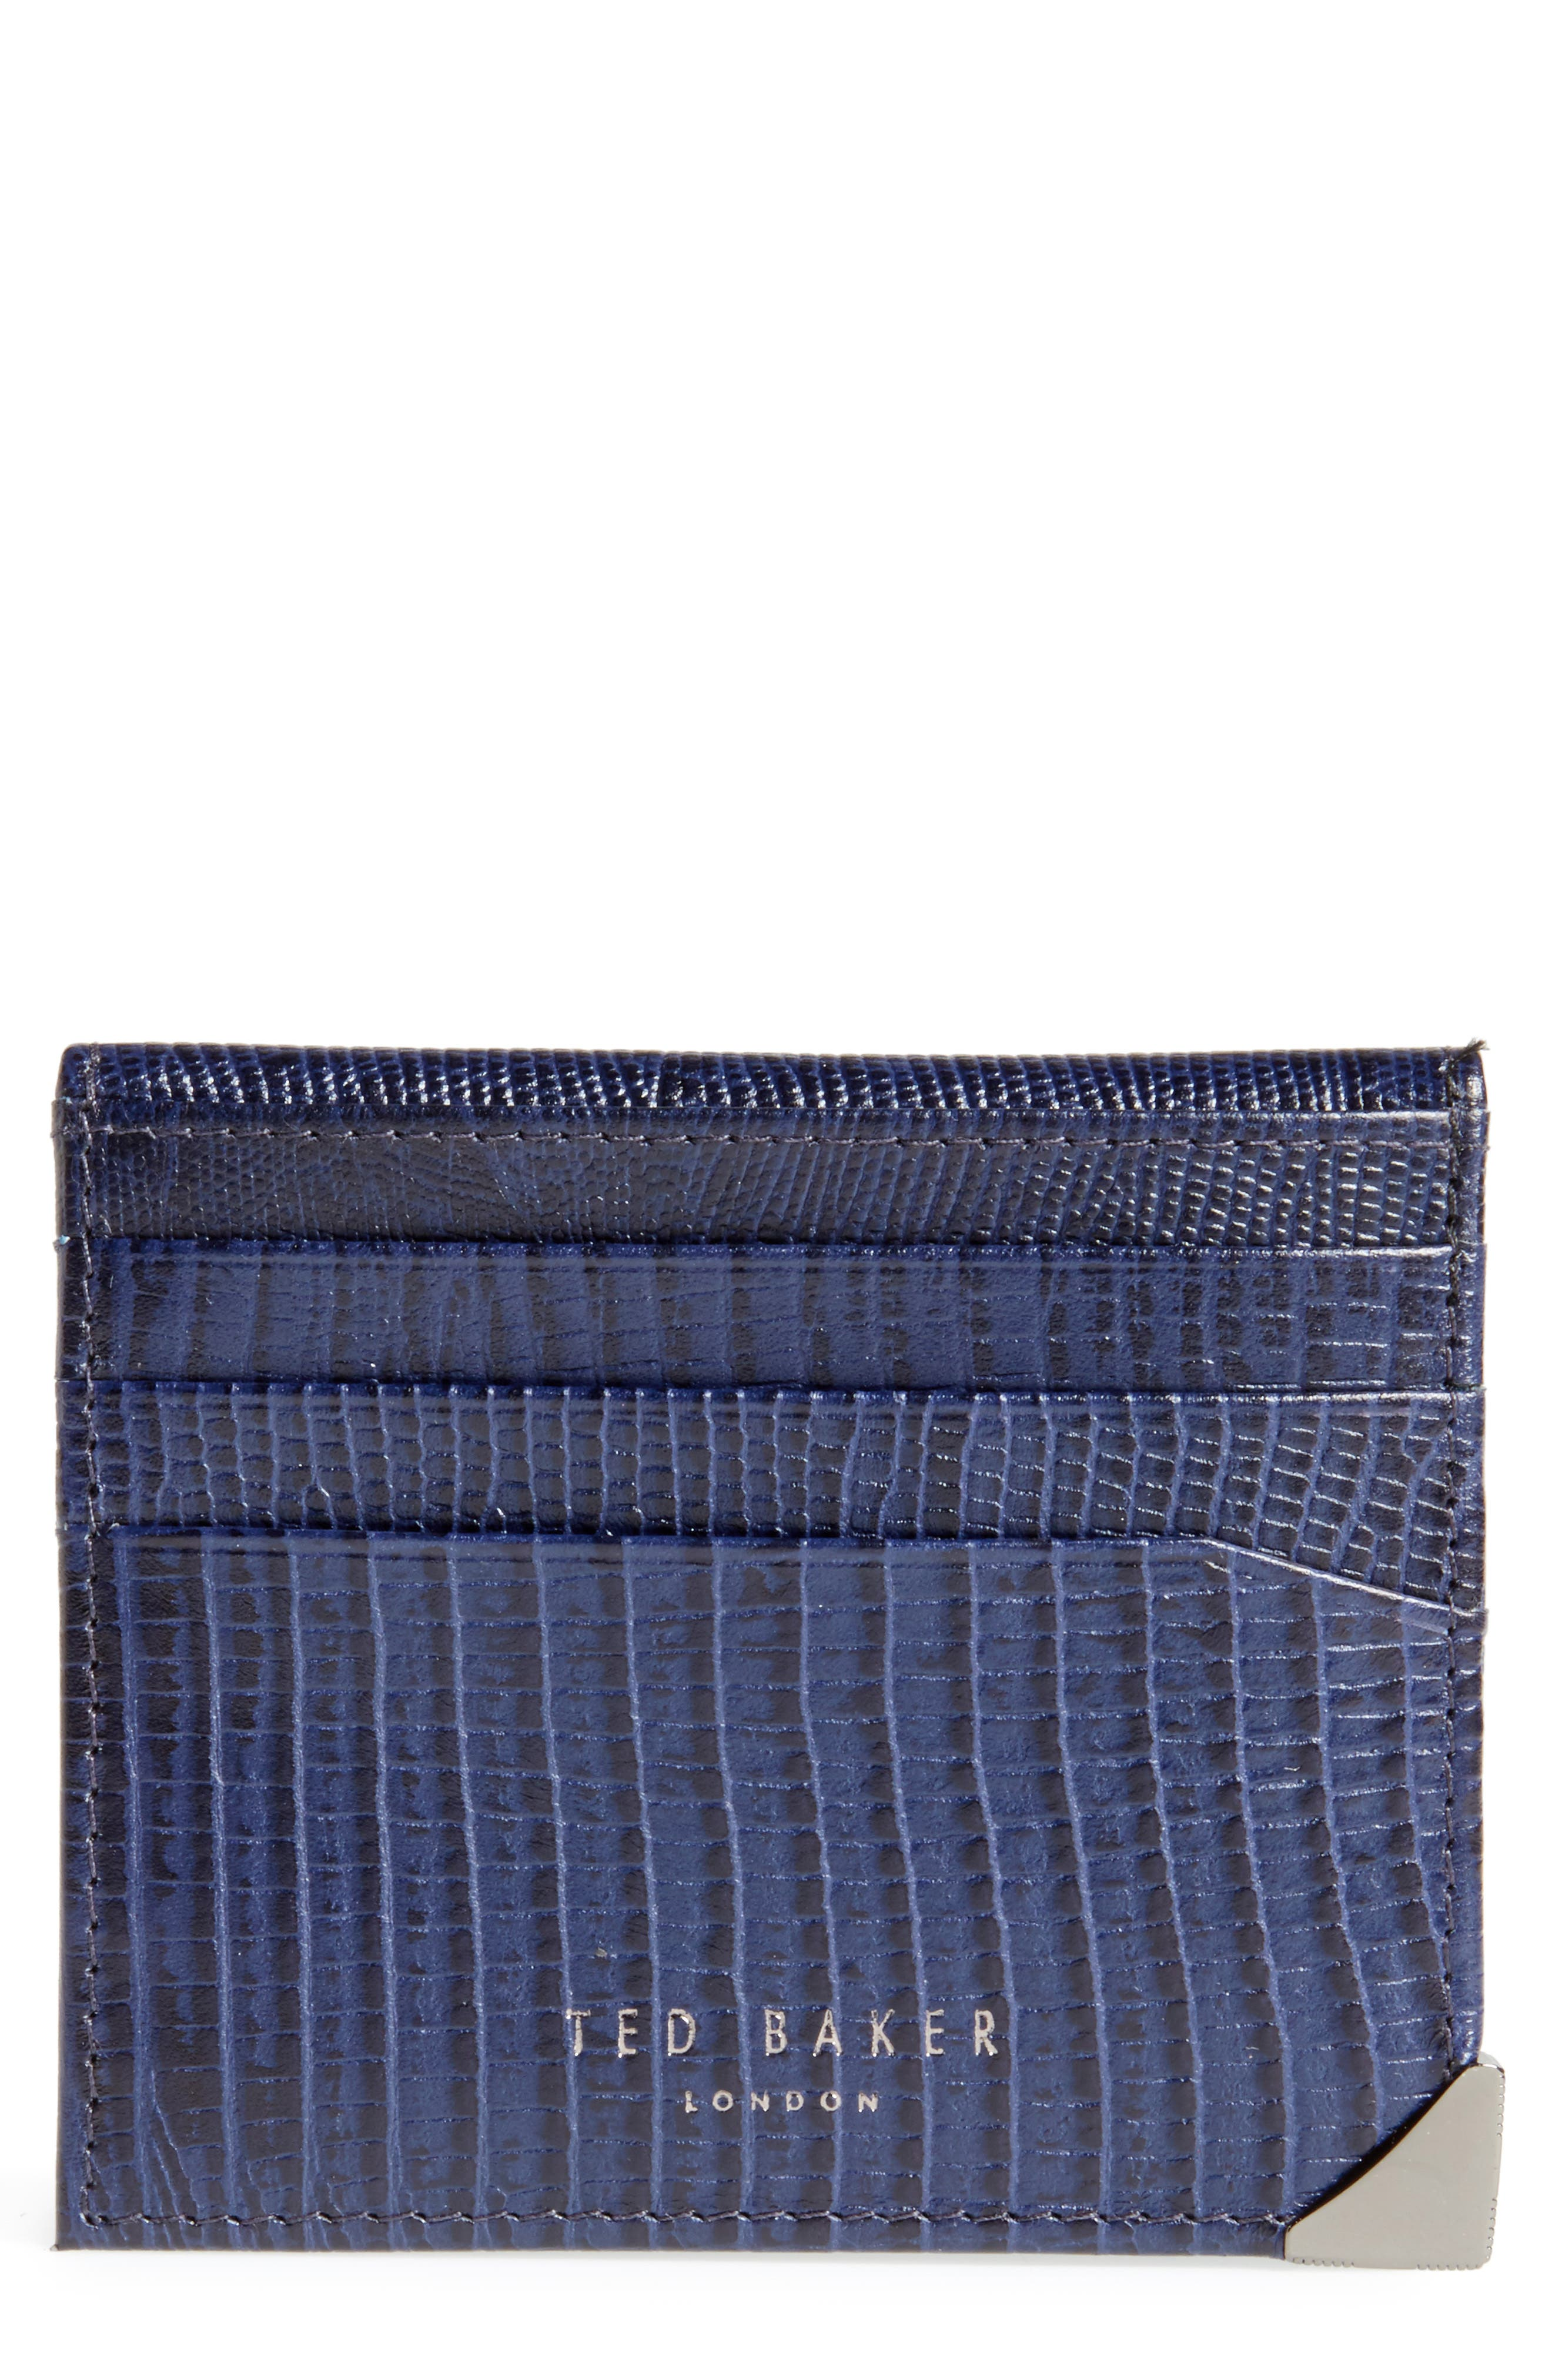 Liztay Lizard Embossed Leather Foldover Card Case,                             Main thumbnail 1, color,                             Navy